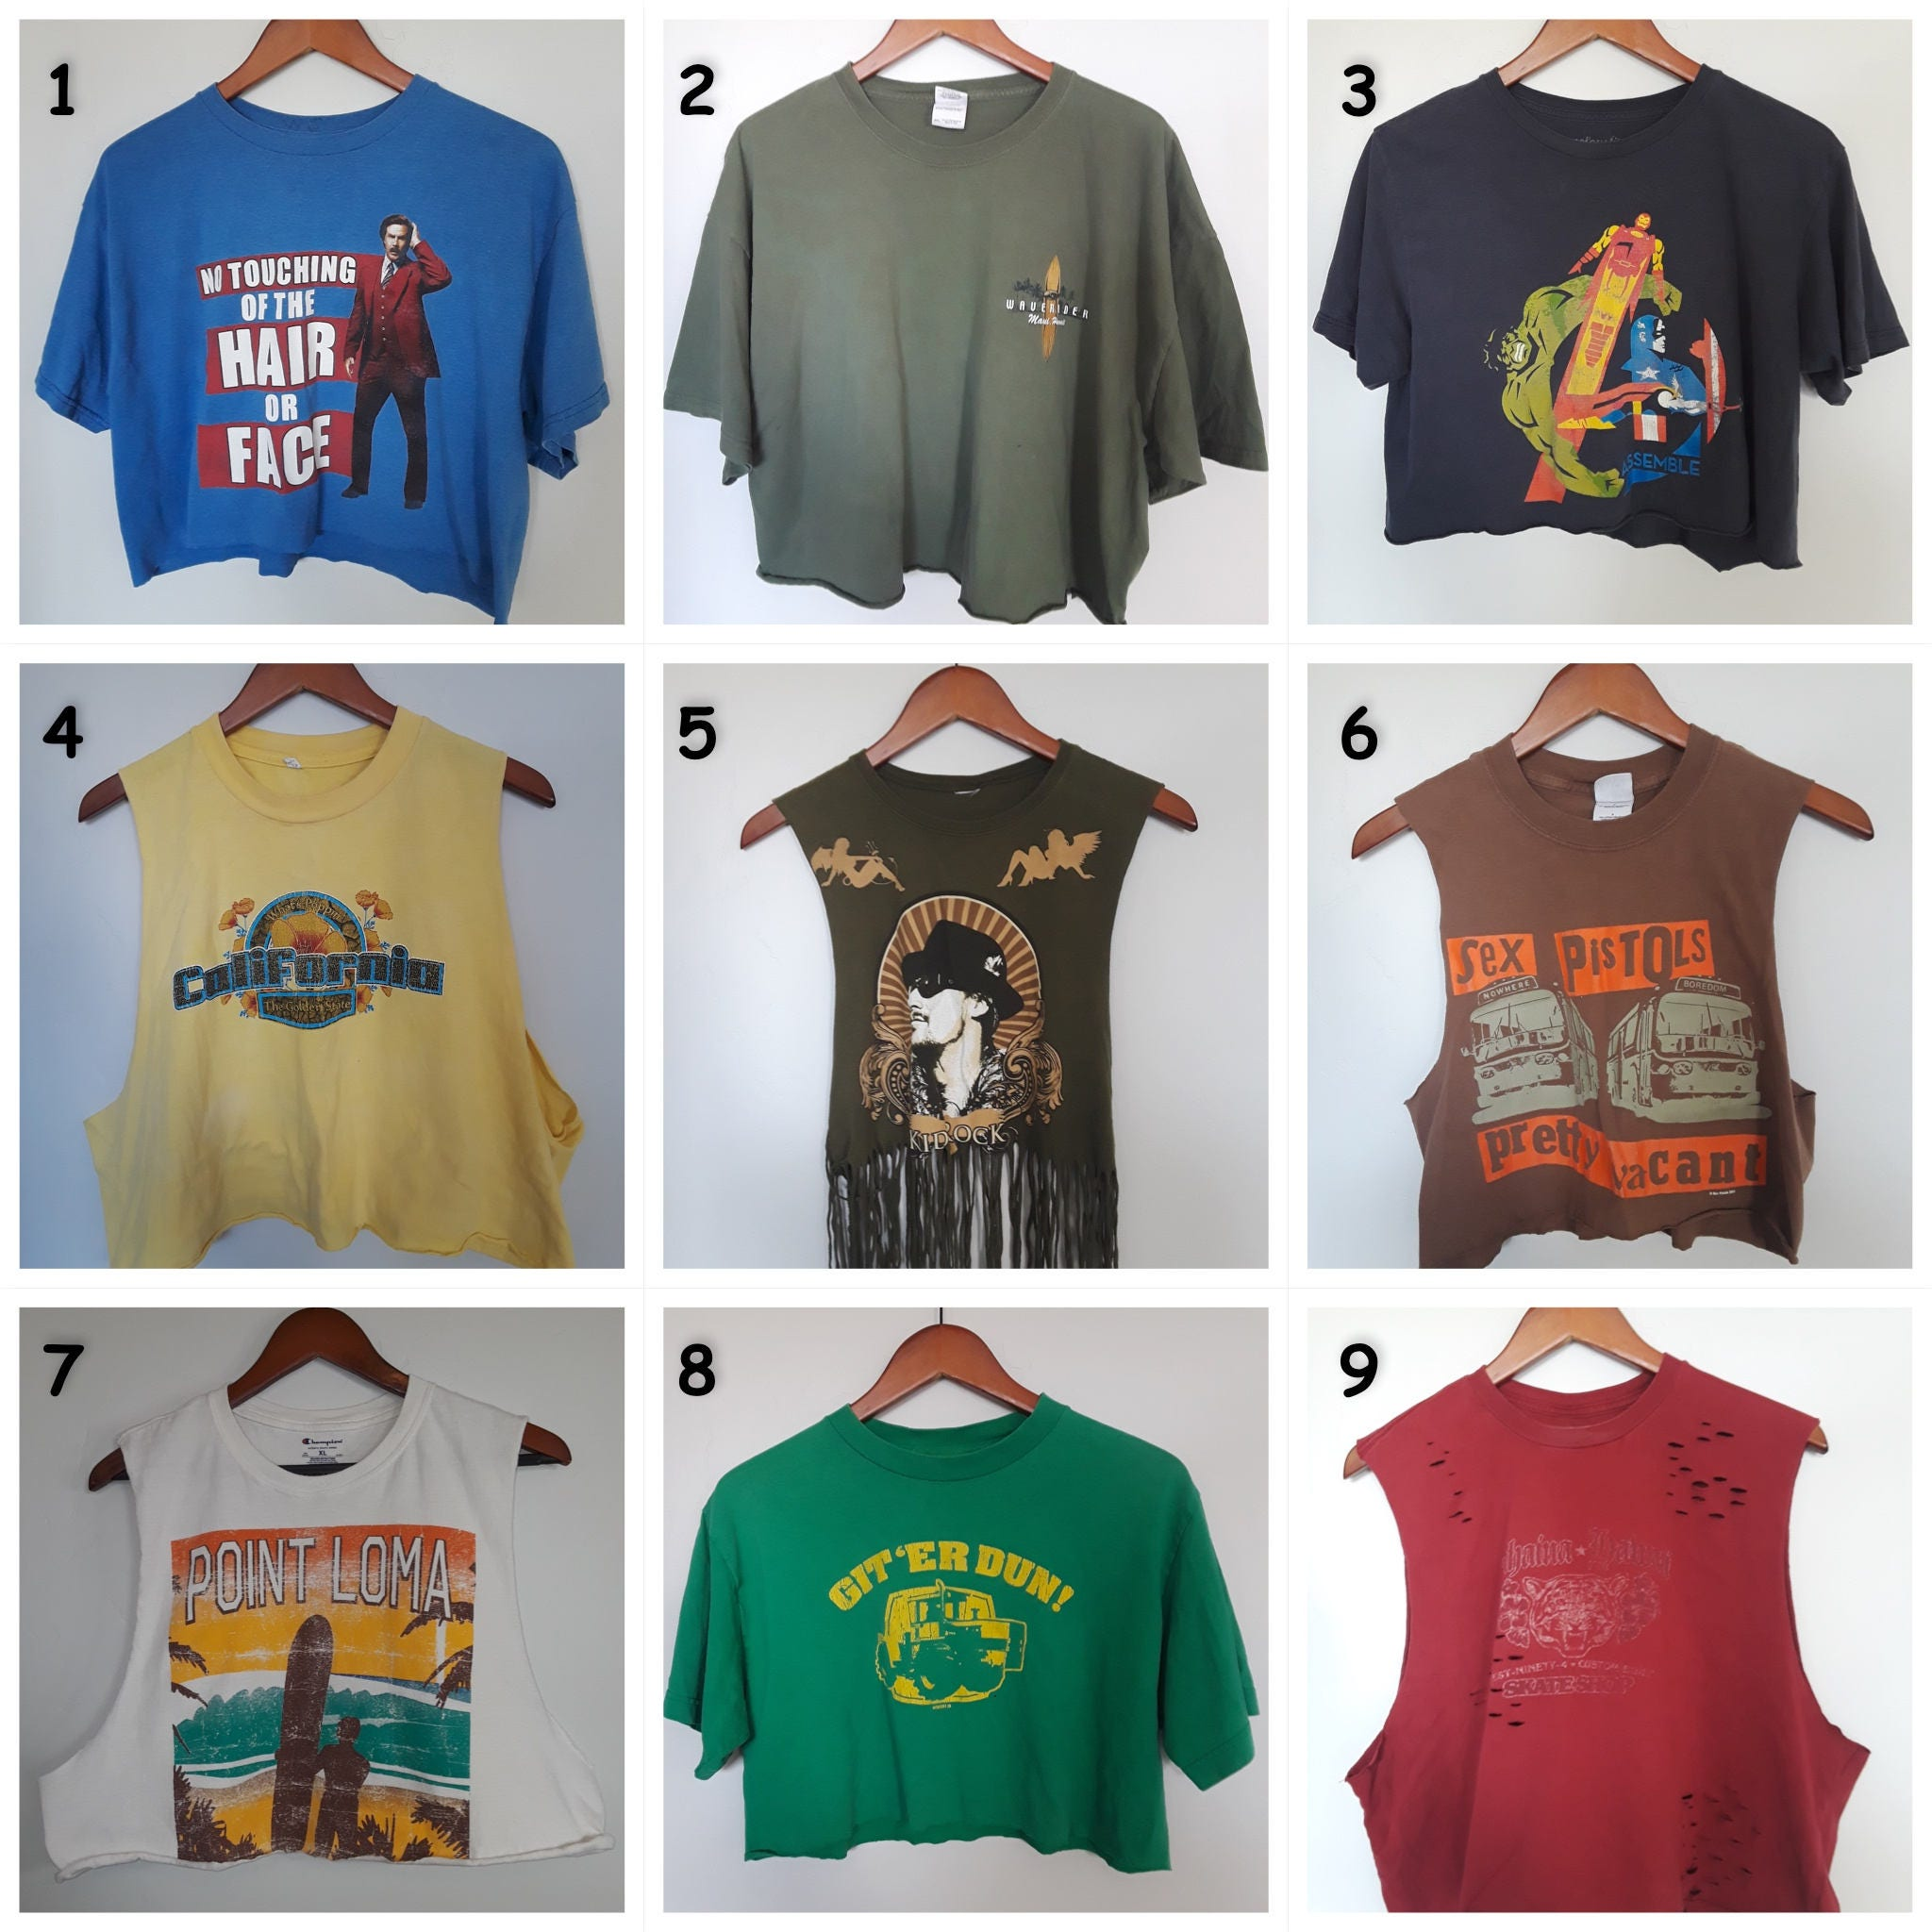 f00bd594f crop tops, graphic tee, old T-shirt